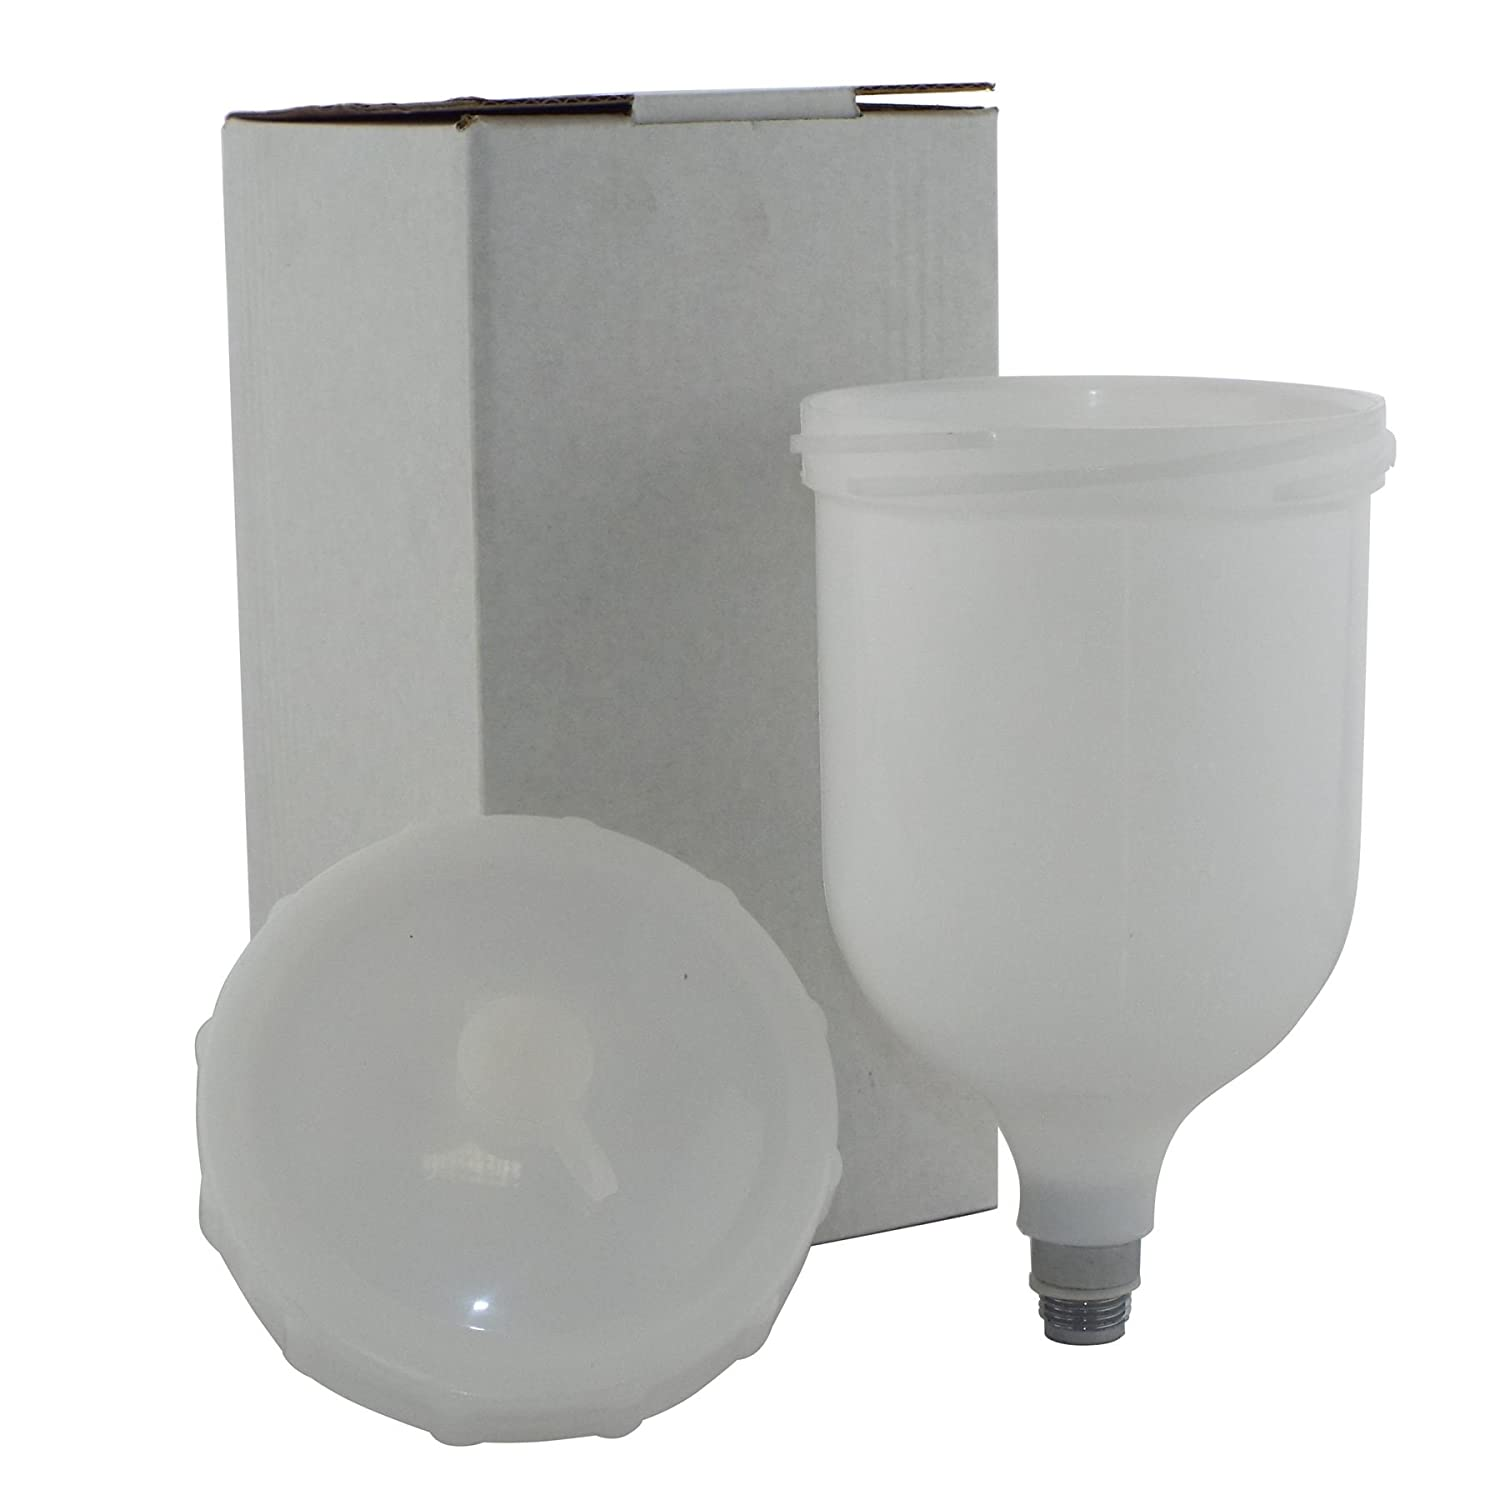 2 x Genuine Devilbiss SLG-450 Replacement/Spare Cup/Lid for Devilbiss SLG-620/SLG-610 Paint Air Spray Guns x 2